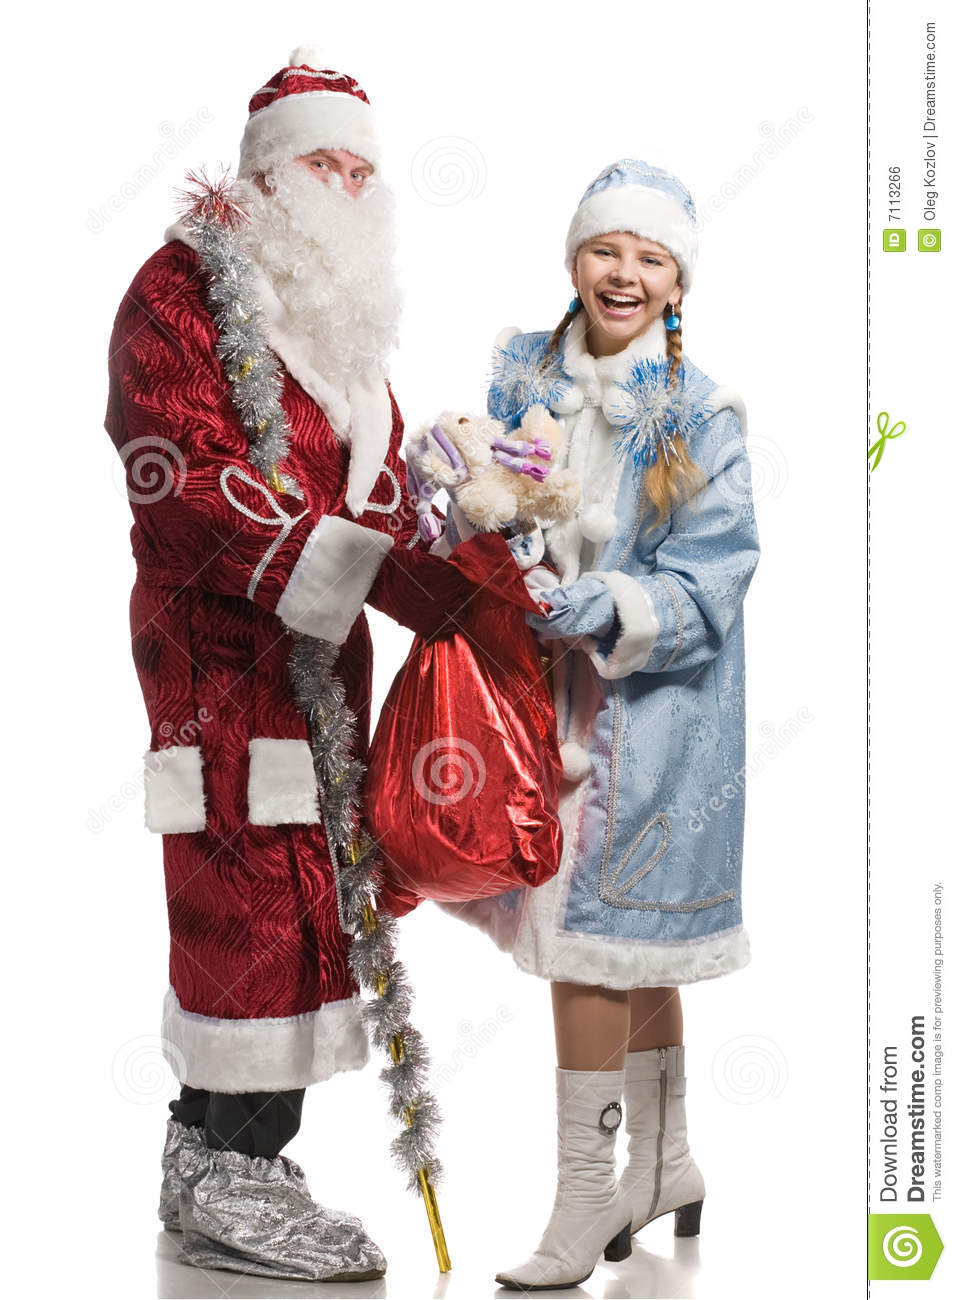 Snow girl and santa claus with gifts royalty free stock